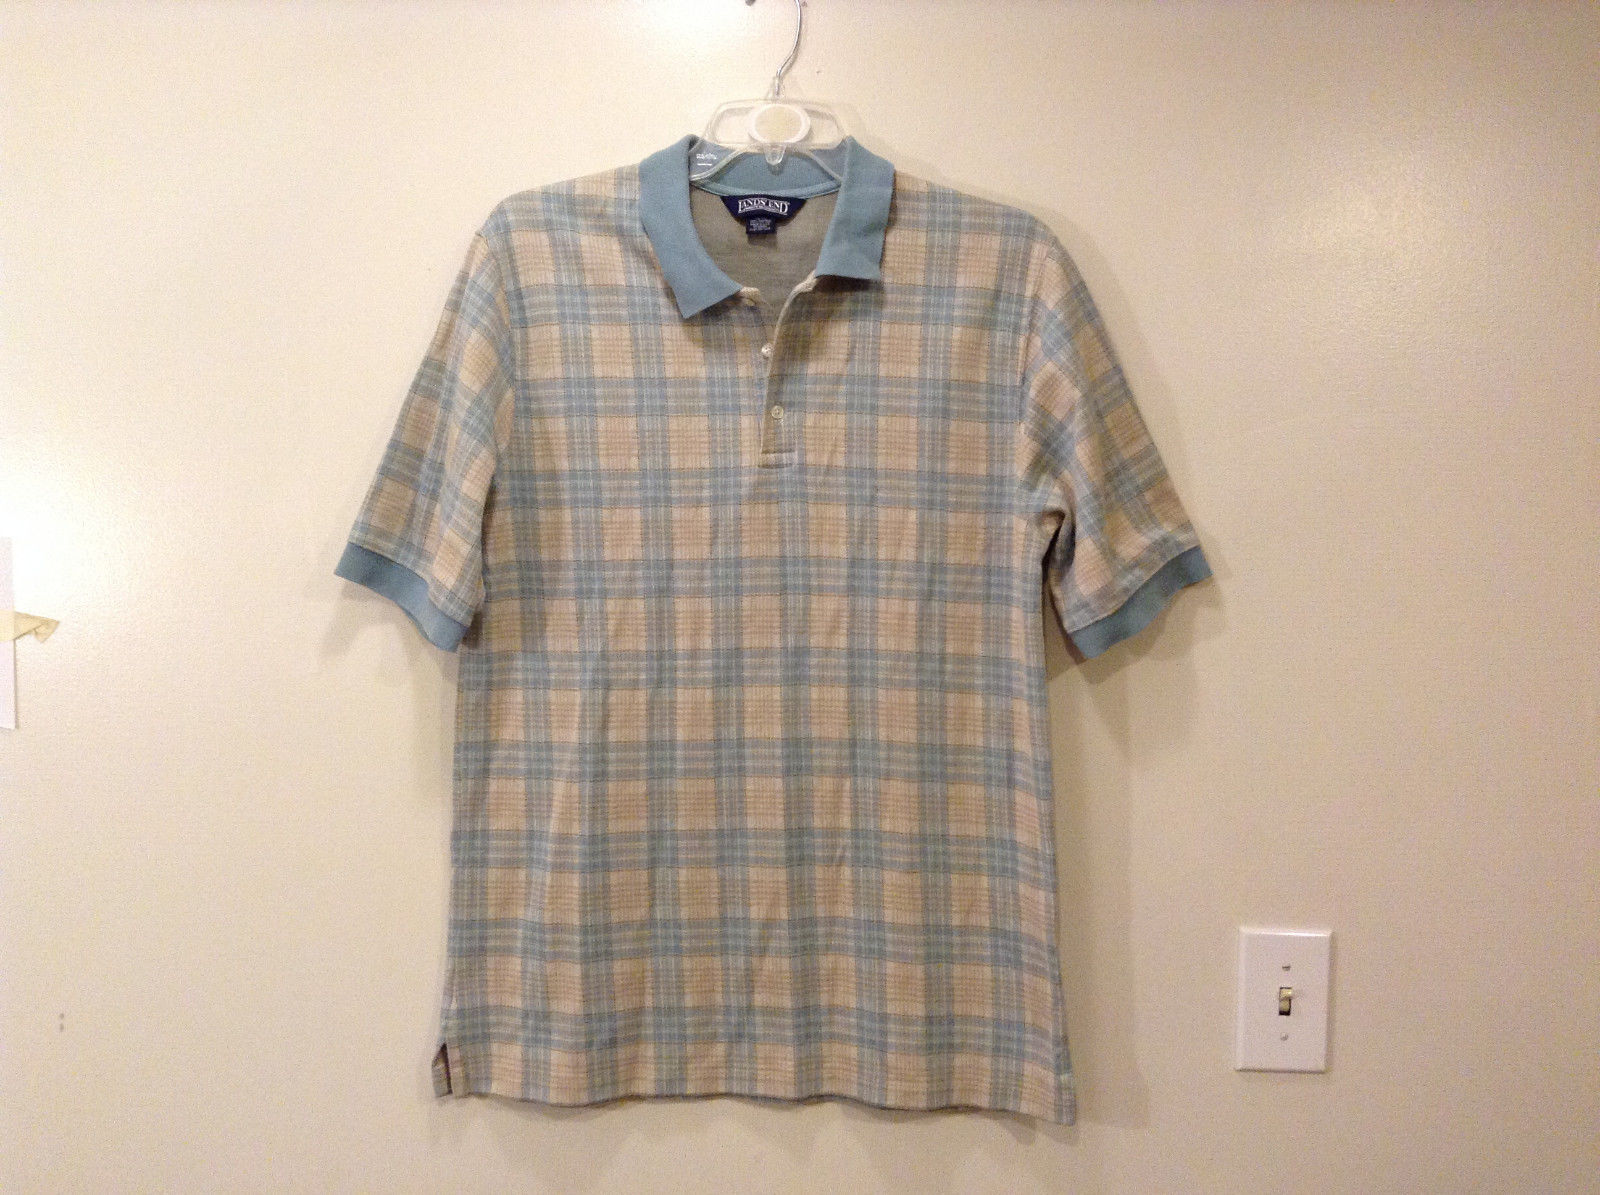 Lands' End Men's Size L 42 44 Polo Shirt Plaid Beige & Dusty Blue Short Sleeves